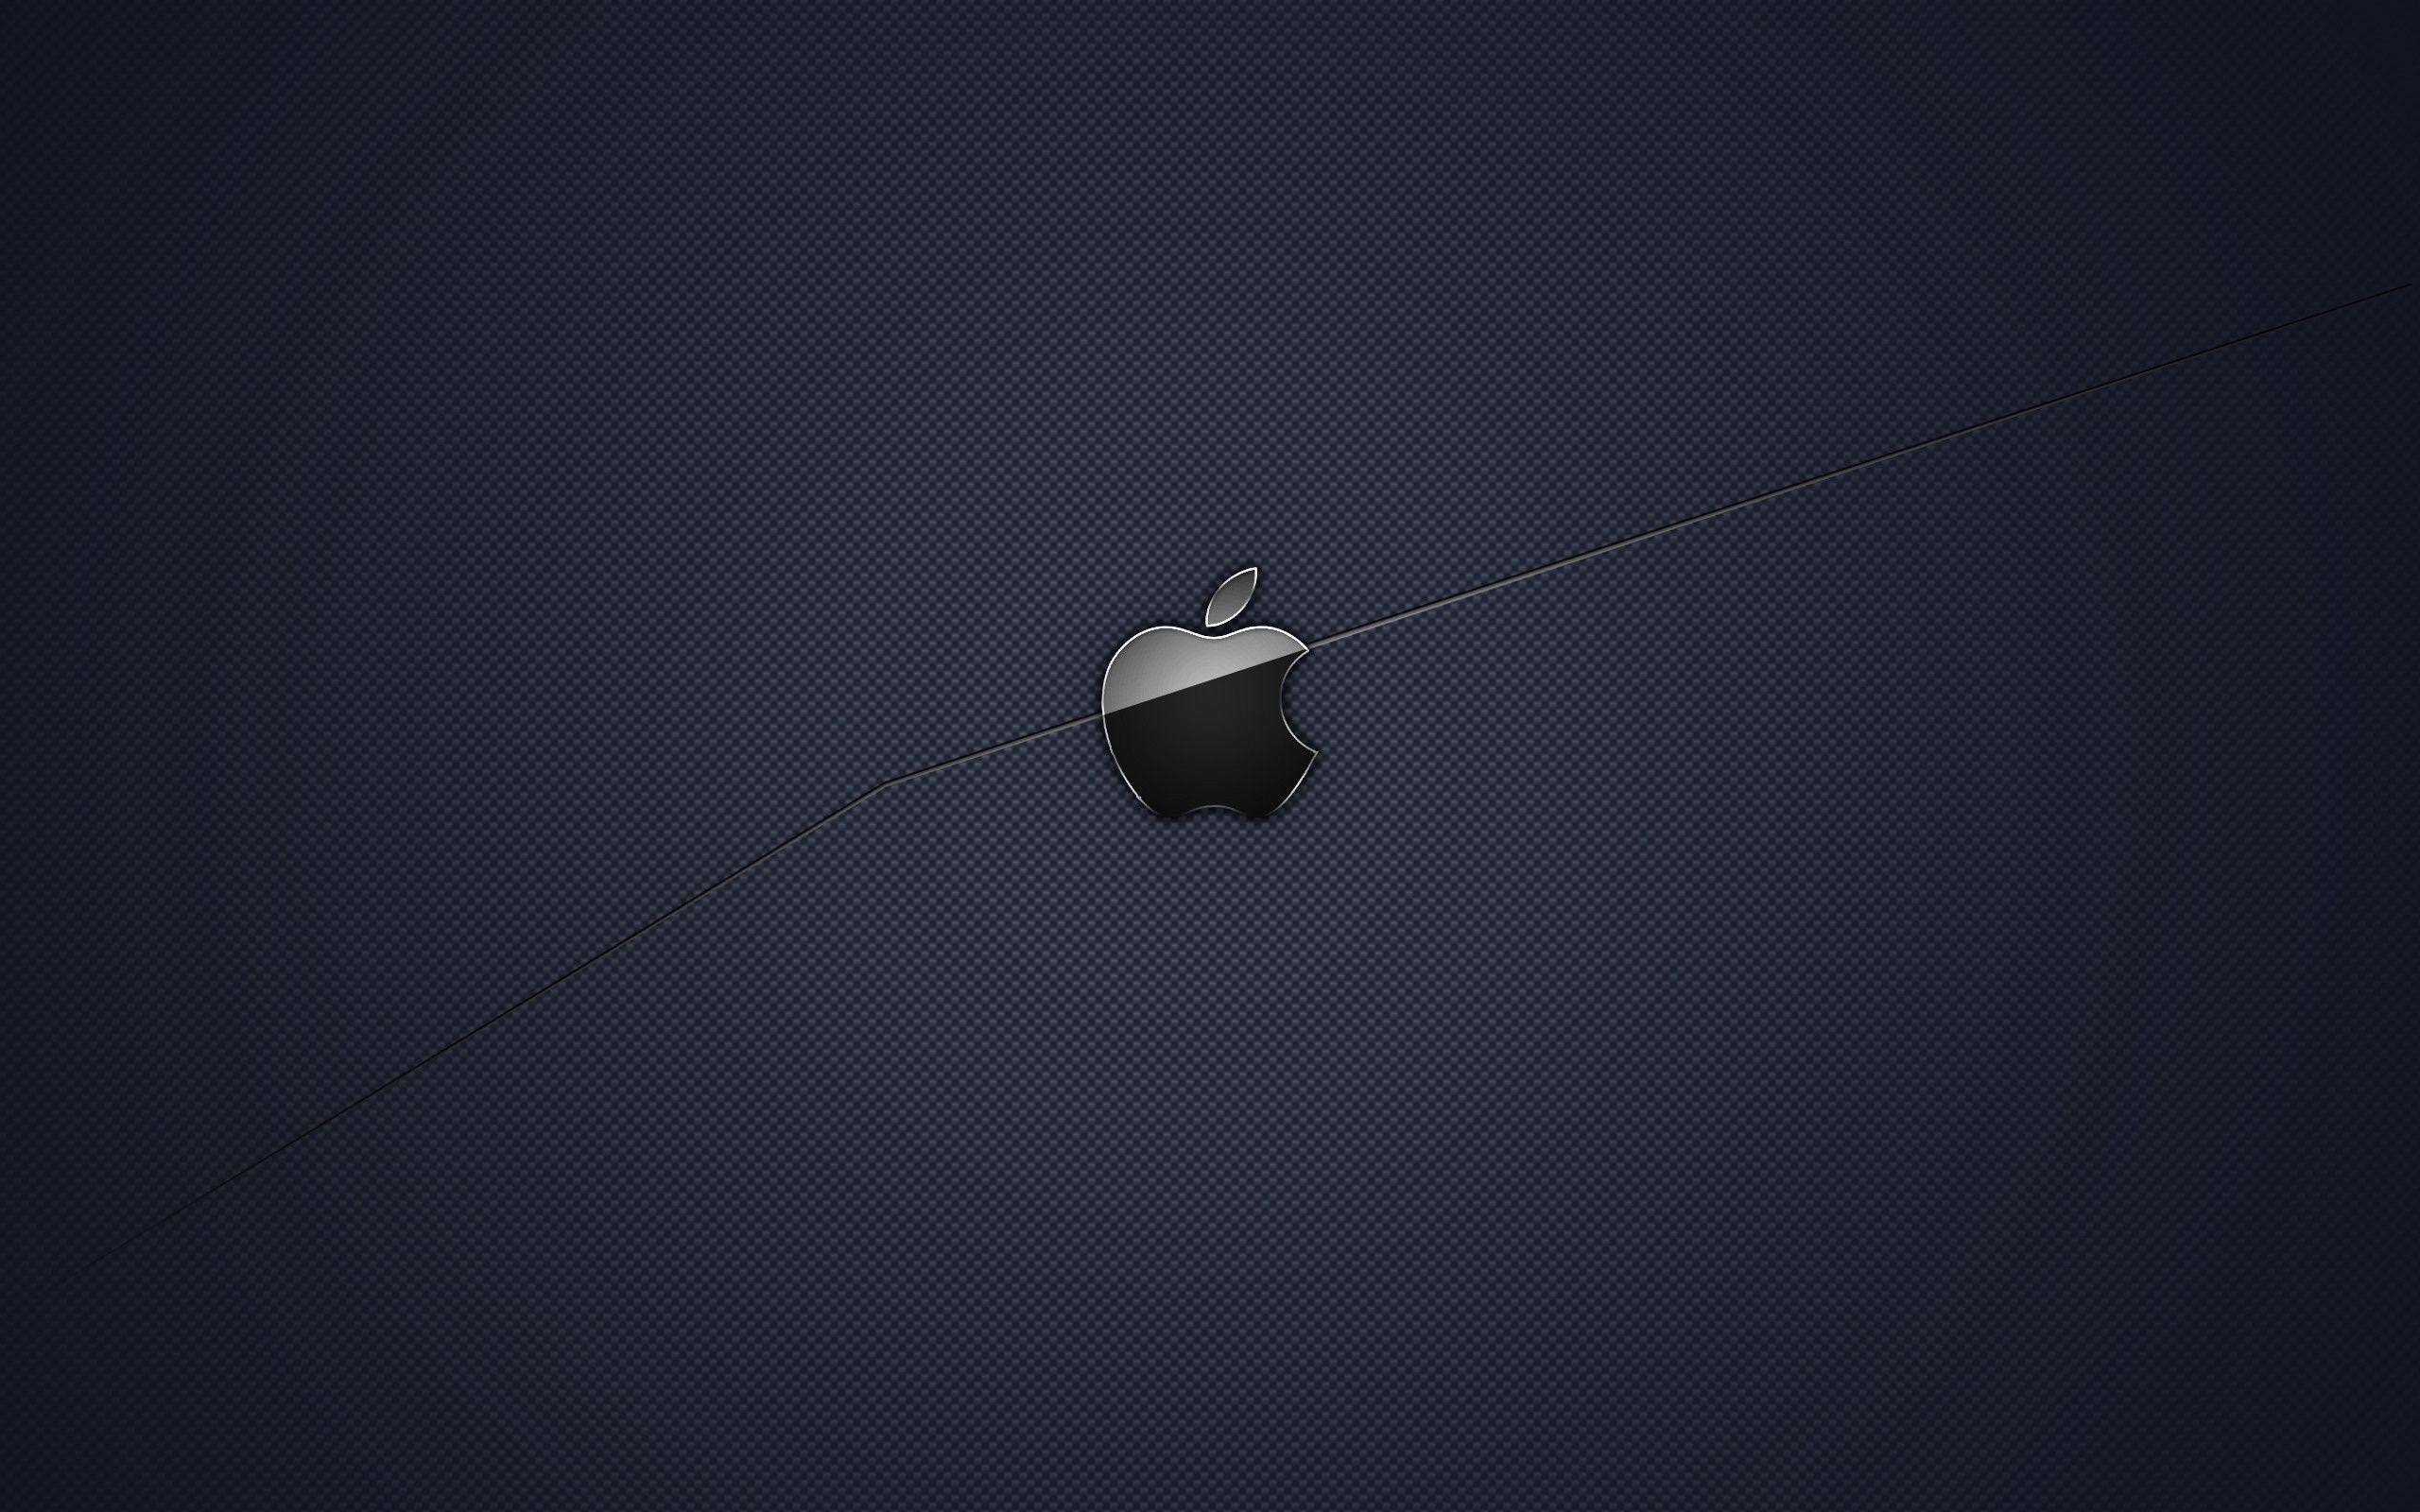 2560x1600 Beautiful Simple Apple Mac OSX Desktop Wallpaper - HD Wallpapers .